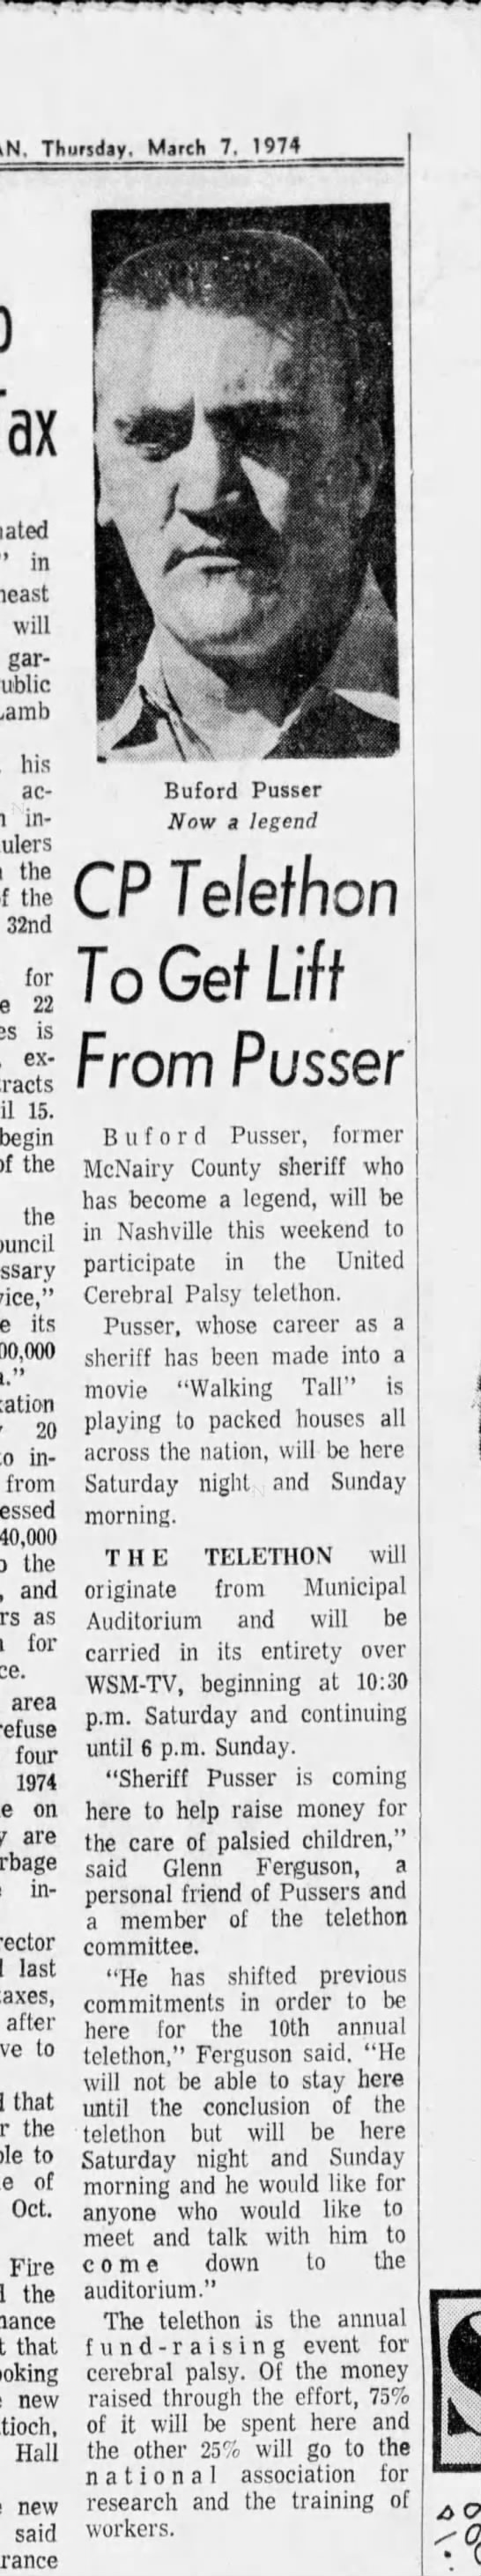 1974-03-07 TENNESSEAN CP Telethon To Get Lift From Pusser_32